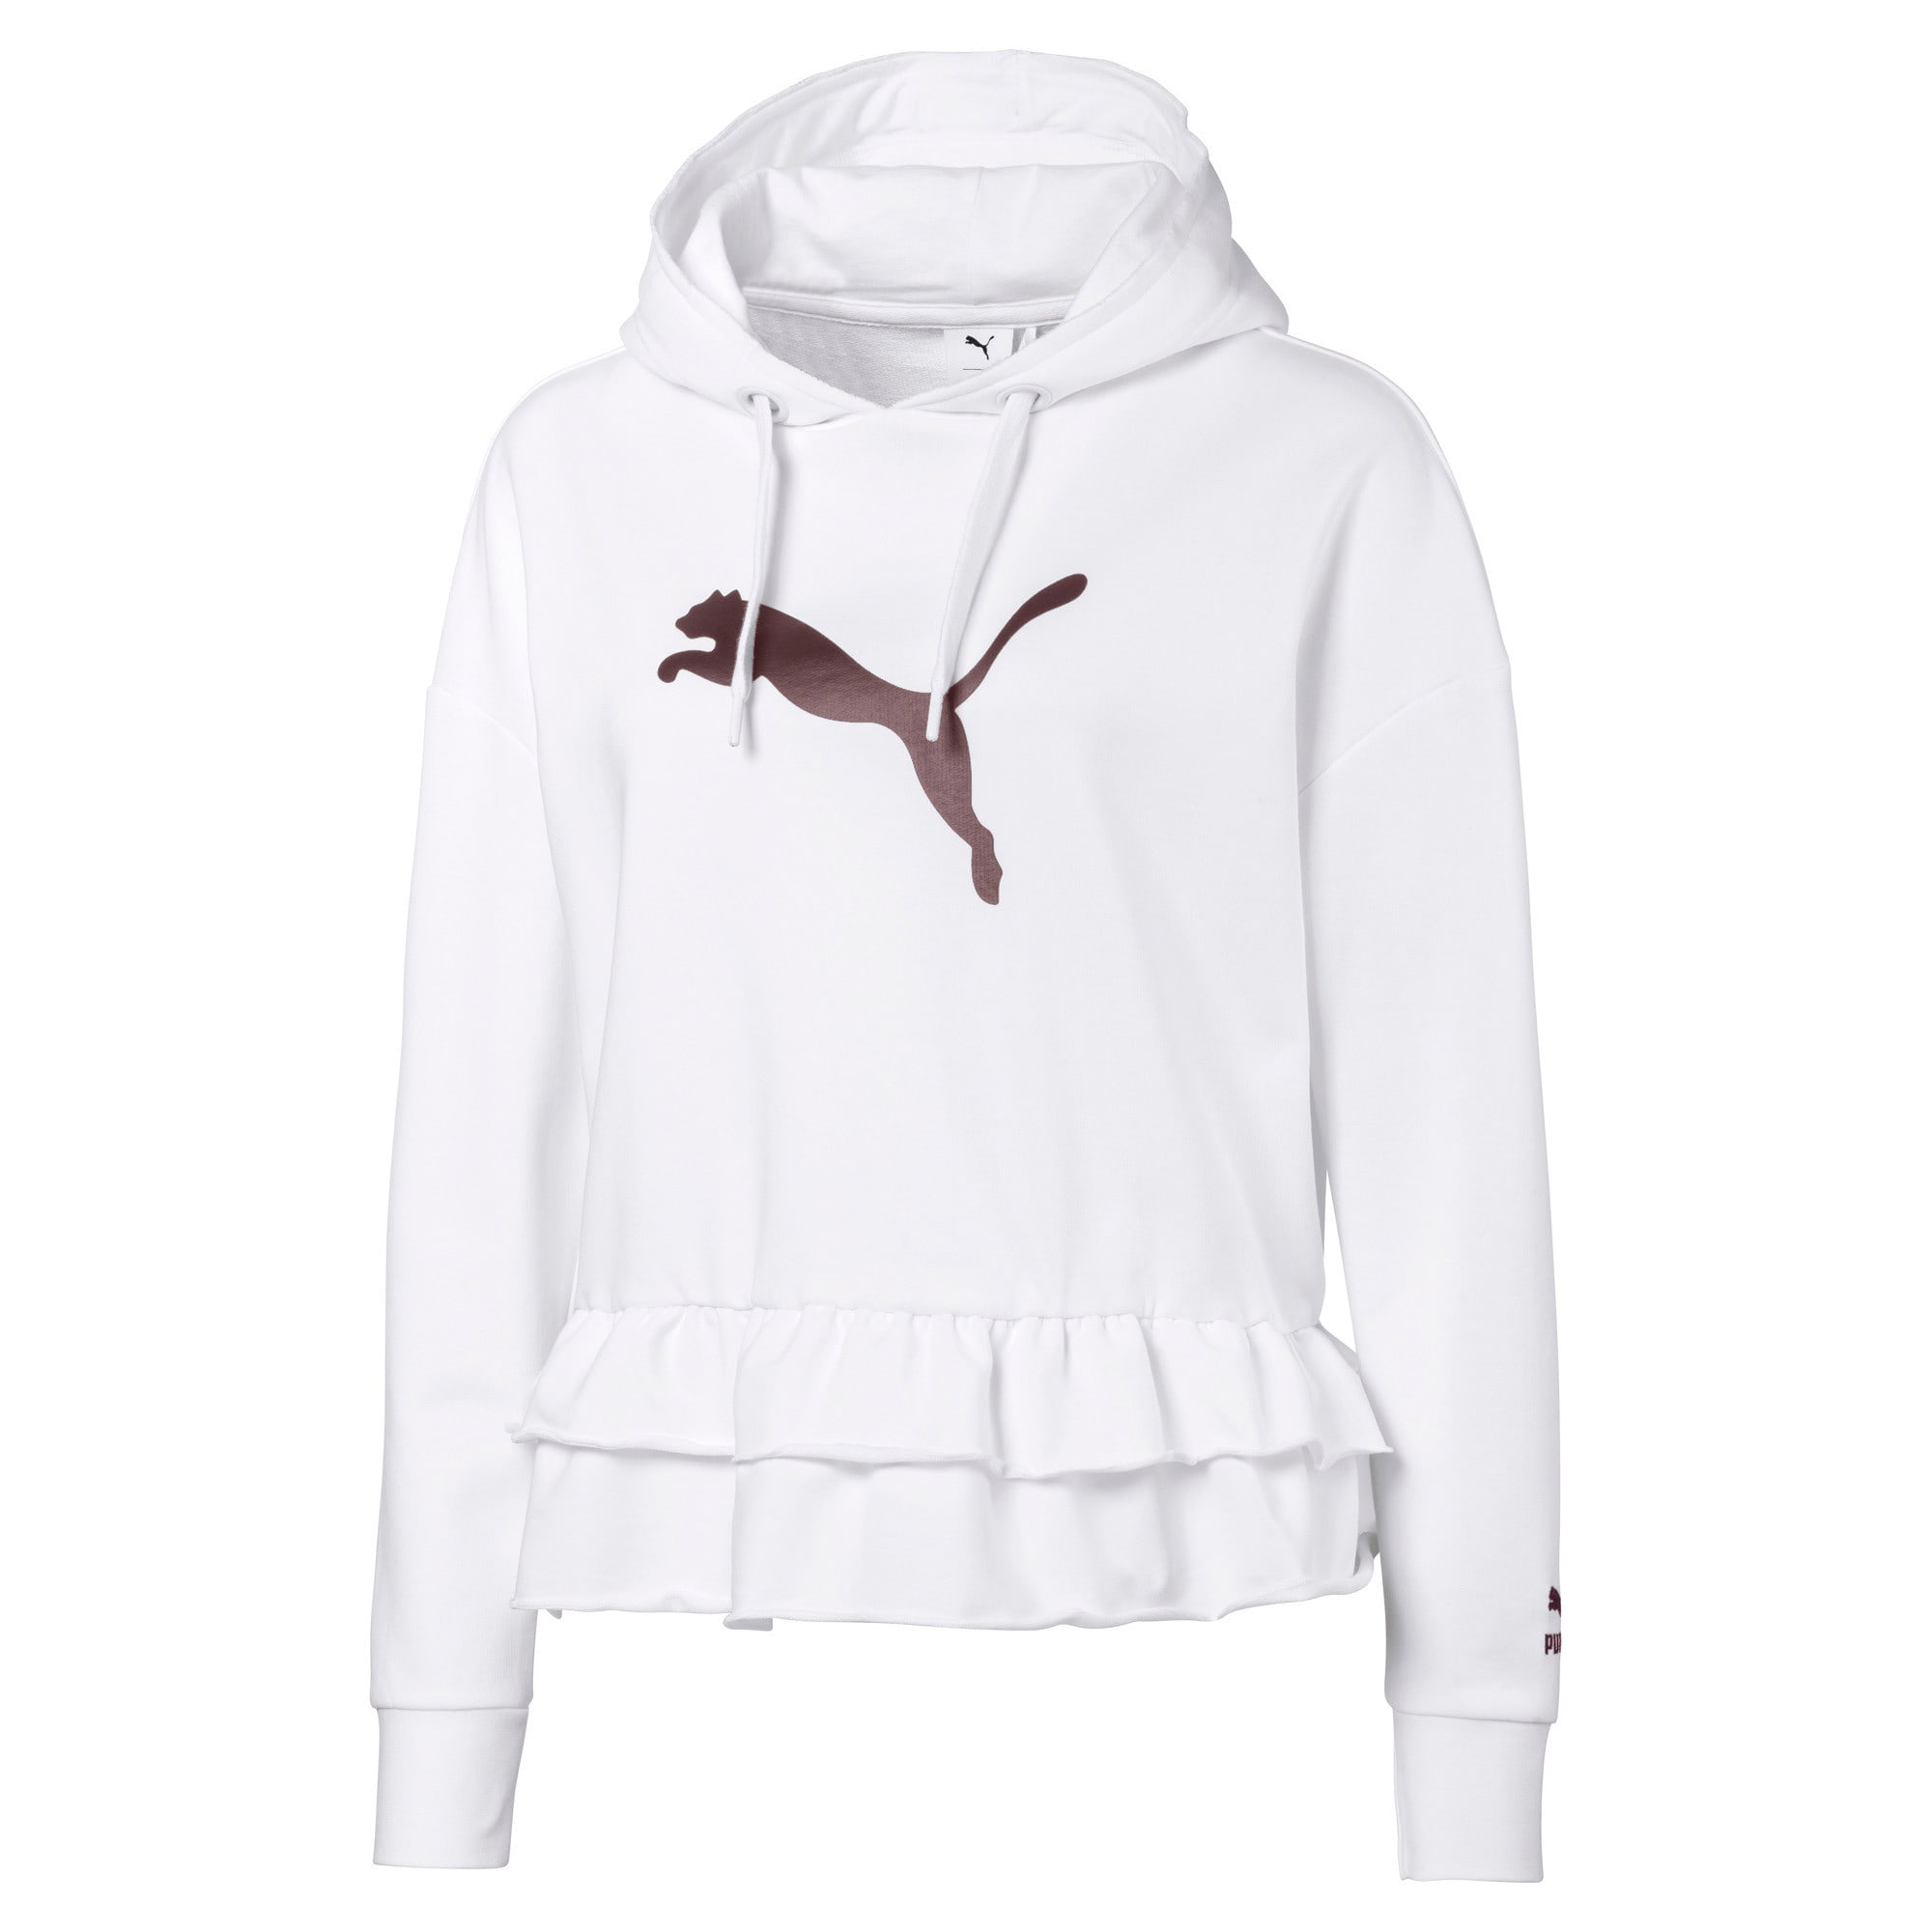 Thumbnail 1 of PUMA x TYAKASHA Women's Hoodie, Puma White, medium